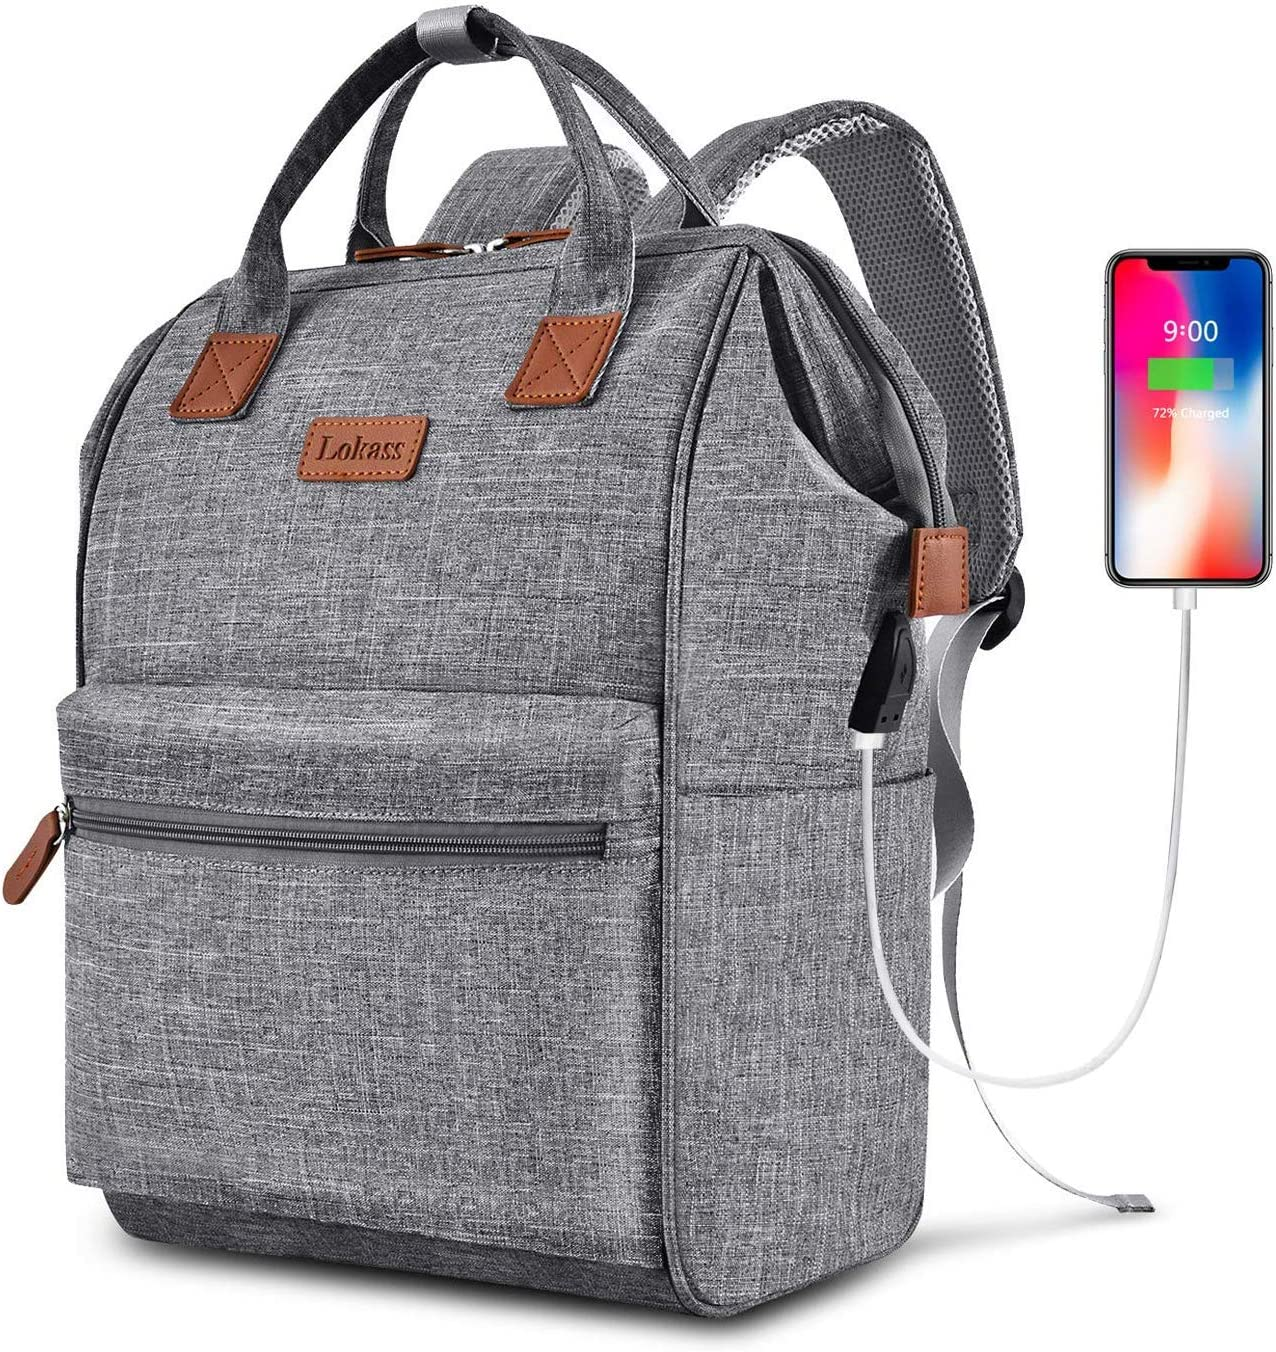 BRINCH Laptop Backpack 17.3 Inch Wide Open Computer Backpack Laptop Bag College Rucksack Water Resistant Business Travel Backpack Multipurpose Casual Daypack with USB Charging Port for Women Men,Gray